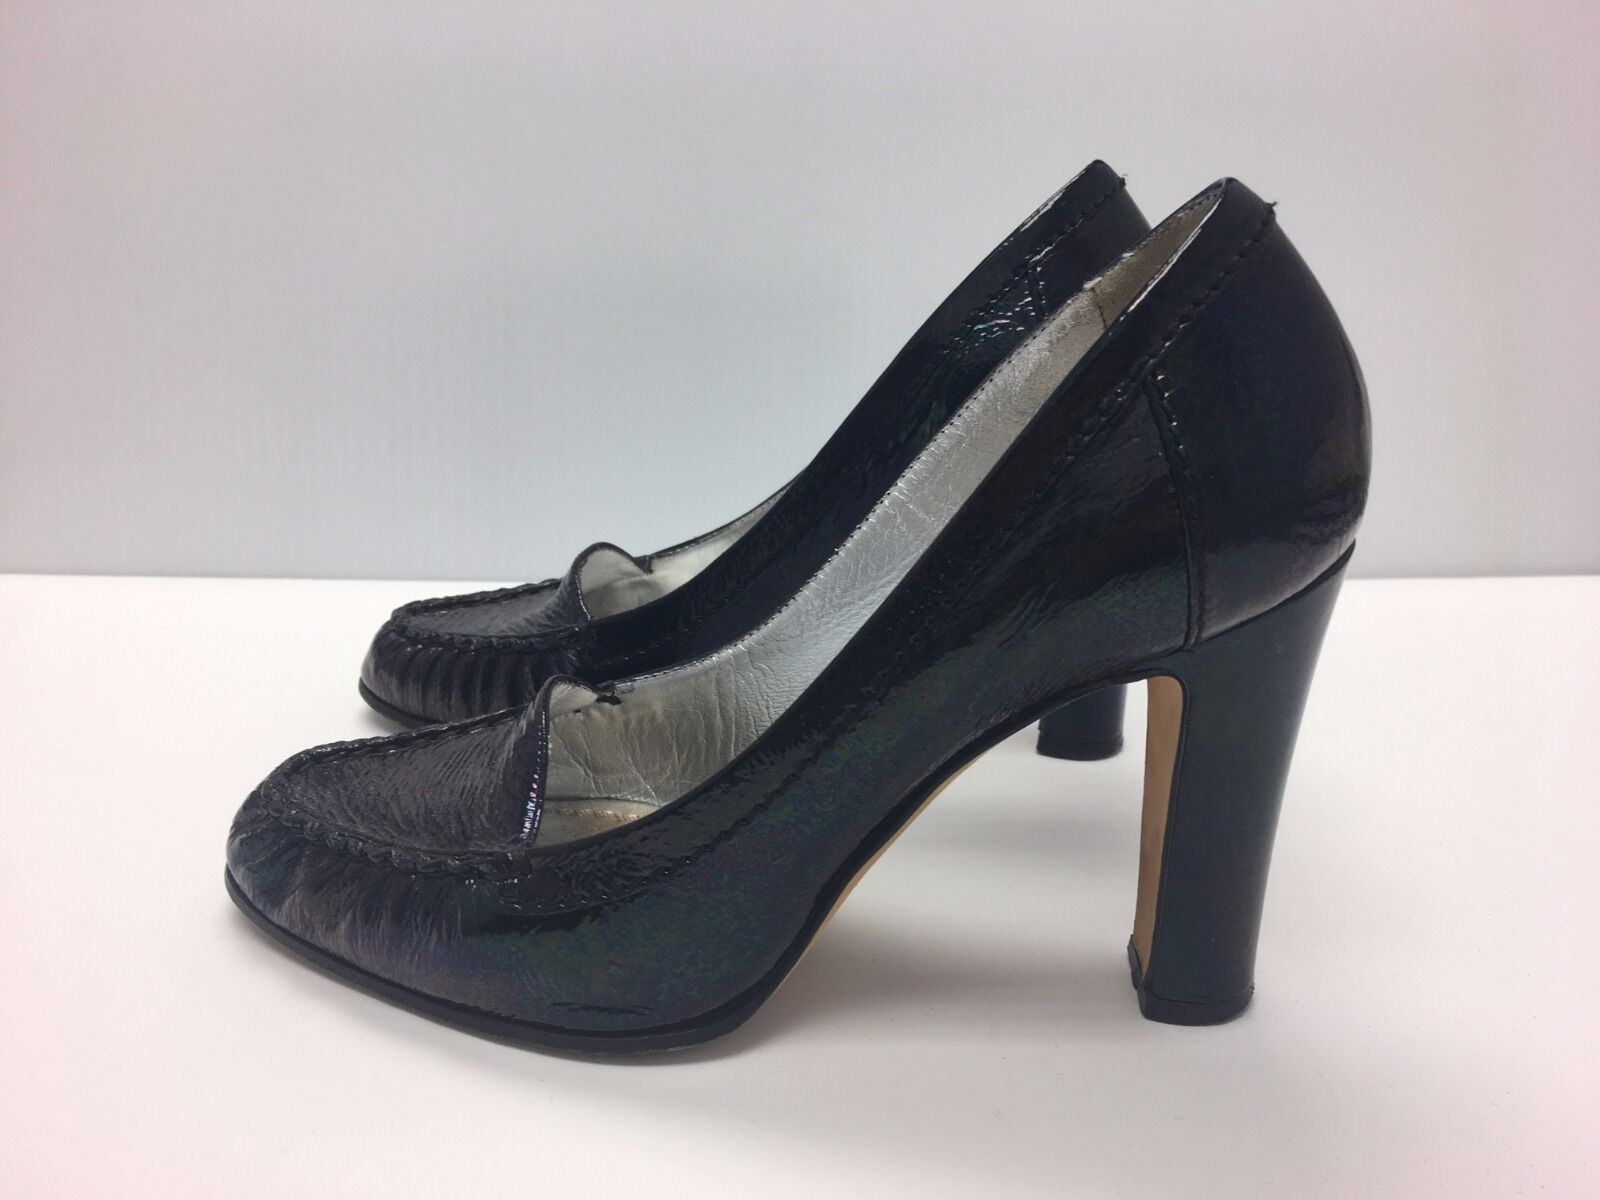 Casadei pumps block heel Comfy-F size 5 35 Lower price